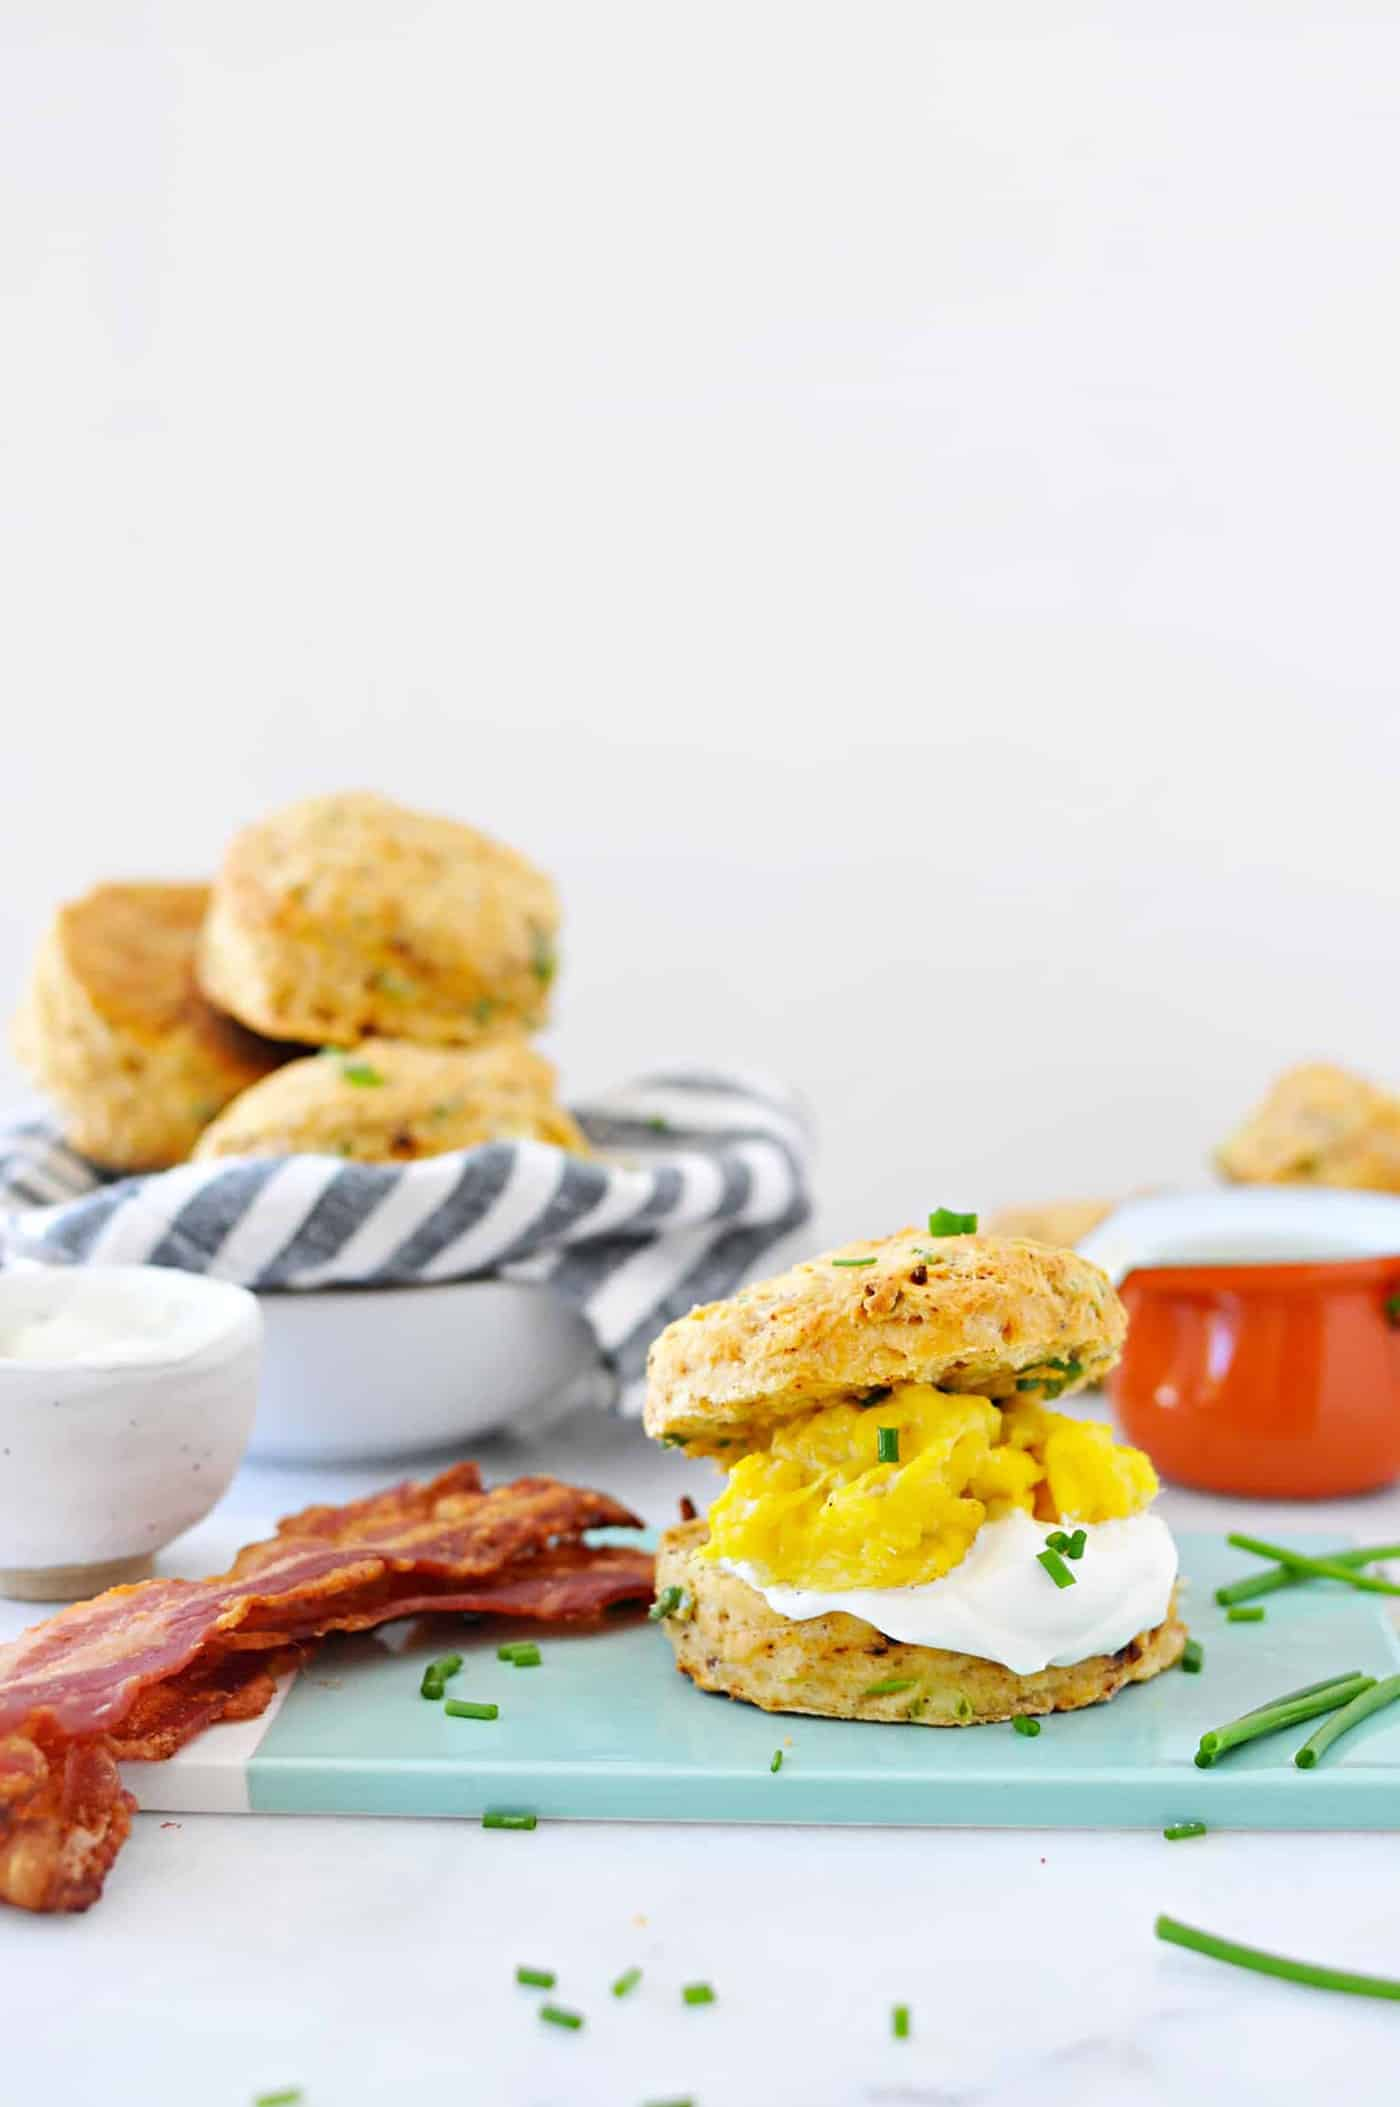 Chorizo + Scallion Sour Cream Biscuit + Egg Sandwiches recipe (via thepigandquill.com) #breakfast #brunch